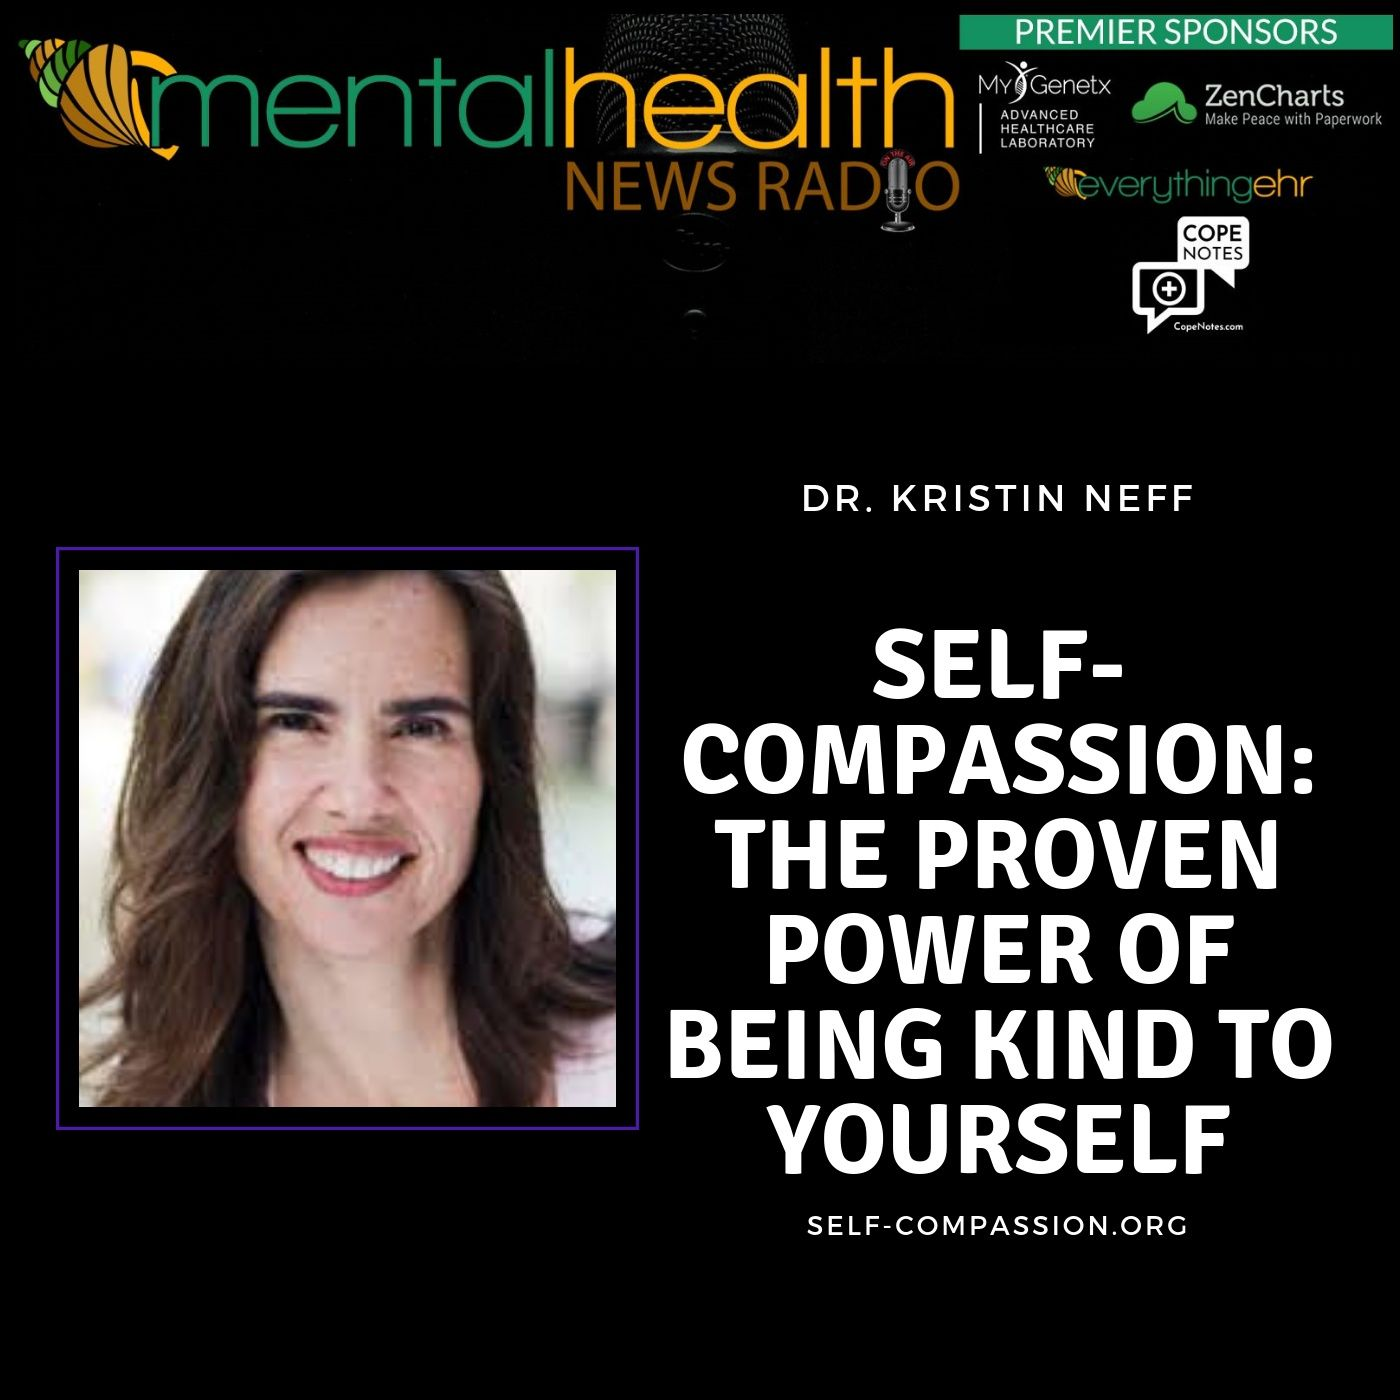 Mental Health News Radio - Self-Compassion: The Proven Power of Being Kind to Yourself with Dr. Kristin Neff